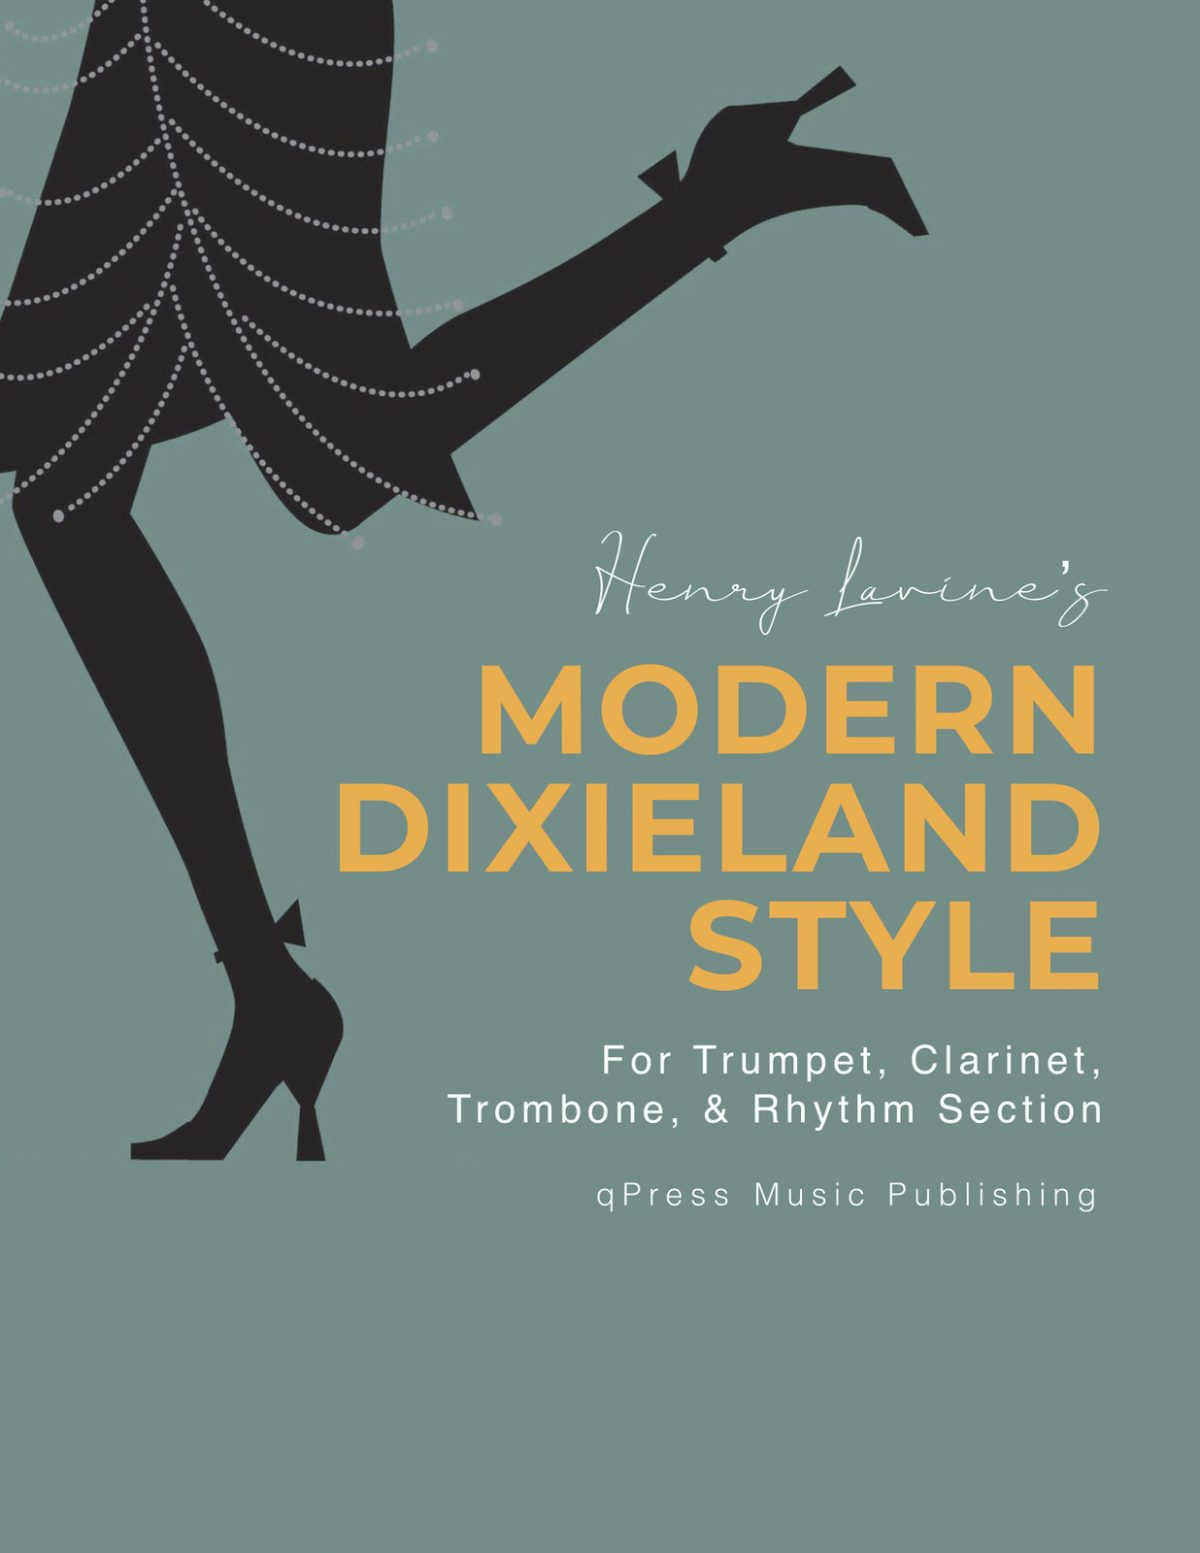 Dixieland Style Featured